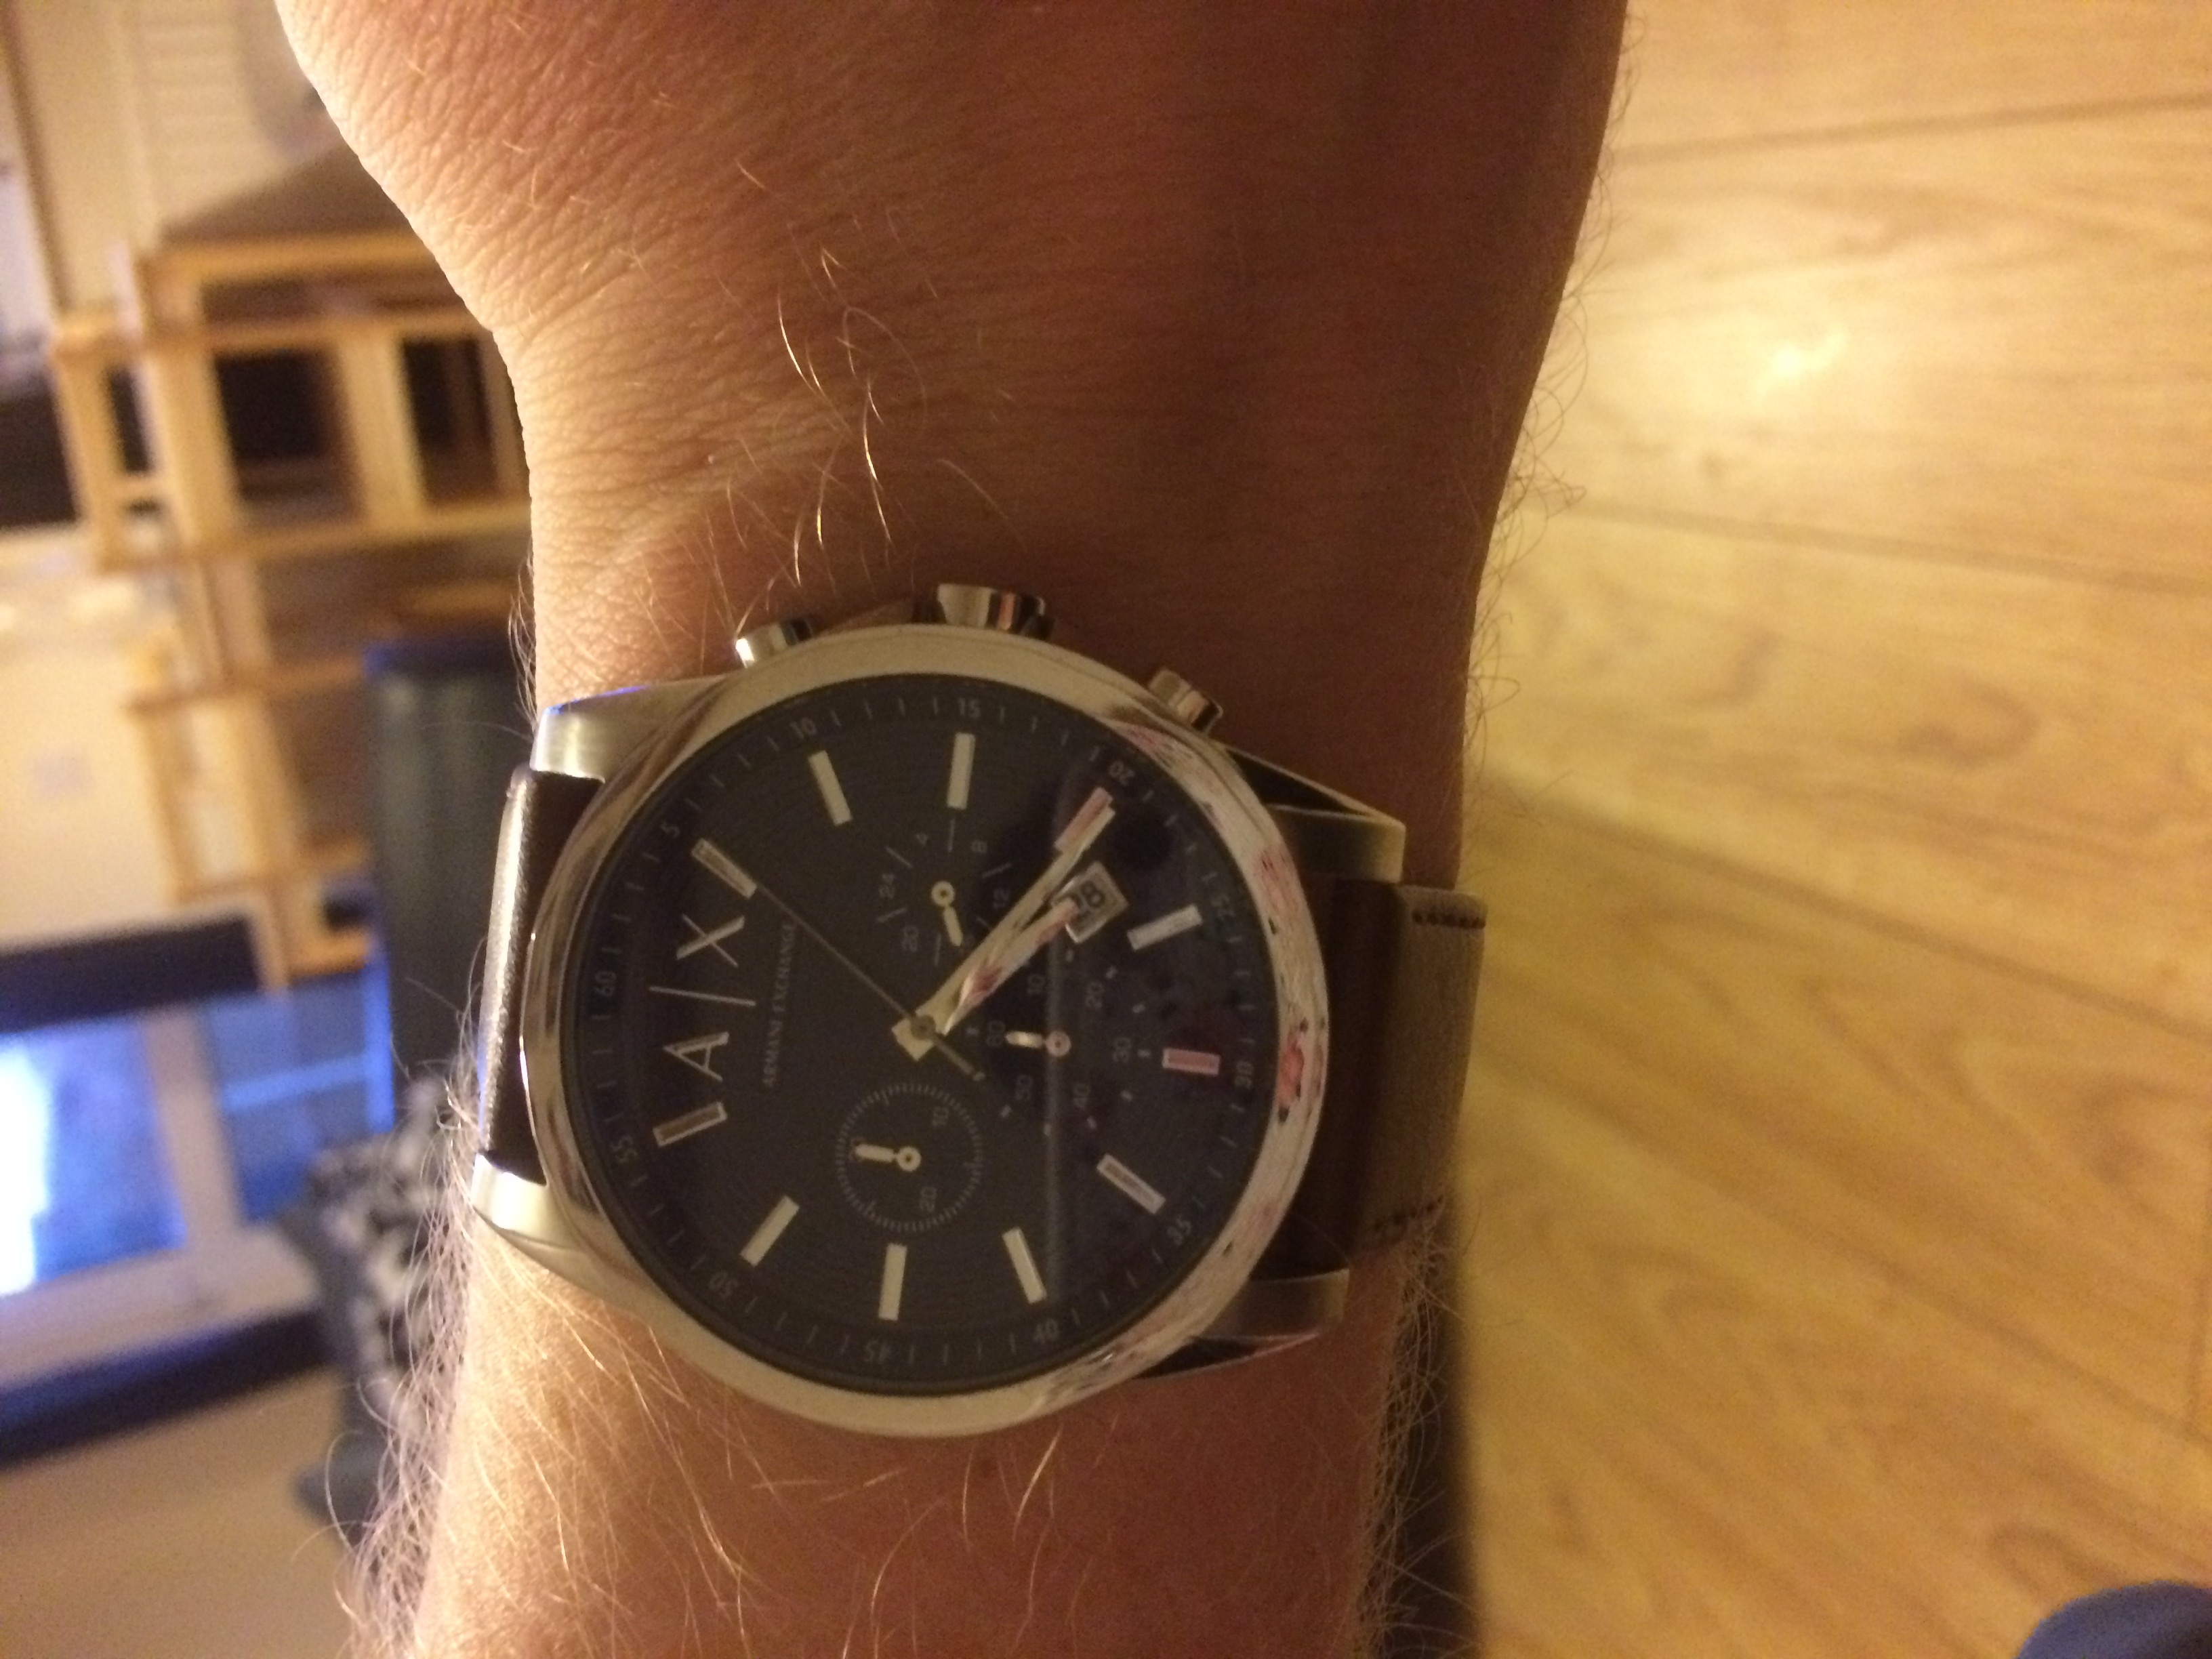 Got this watch for my husband for Christmas. He has wanted one for a while  and after shopping around I found the watch shop the cheapest around. 5a5ac8986e04d